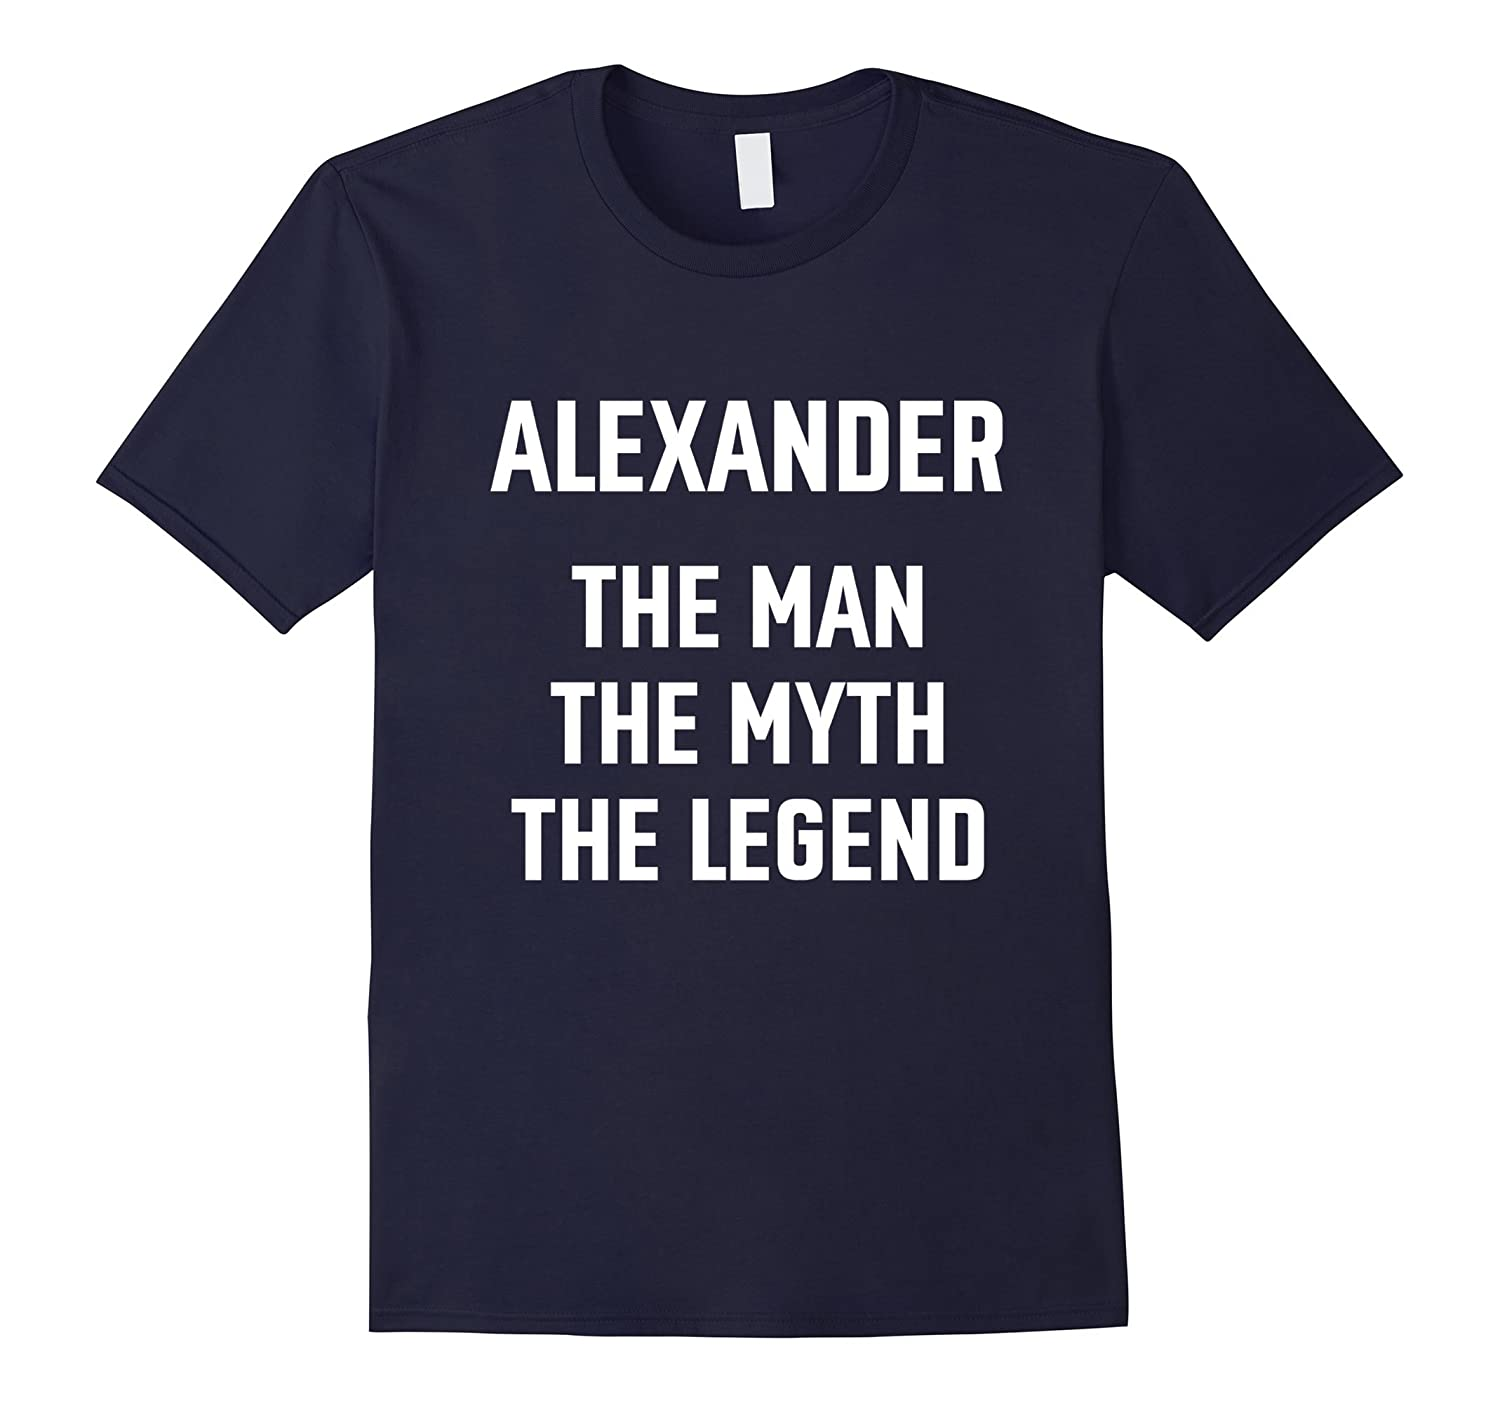 Alexander the man myth legend first name birthday shirt-TD